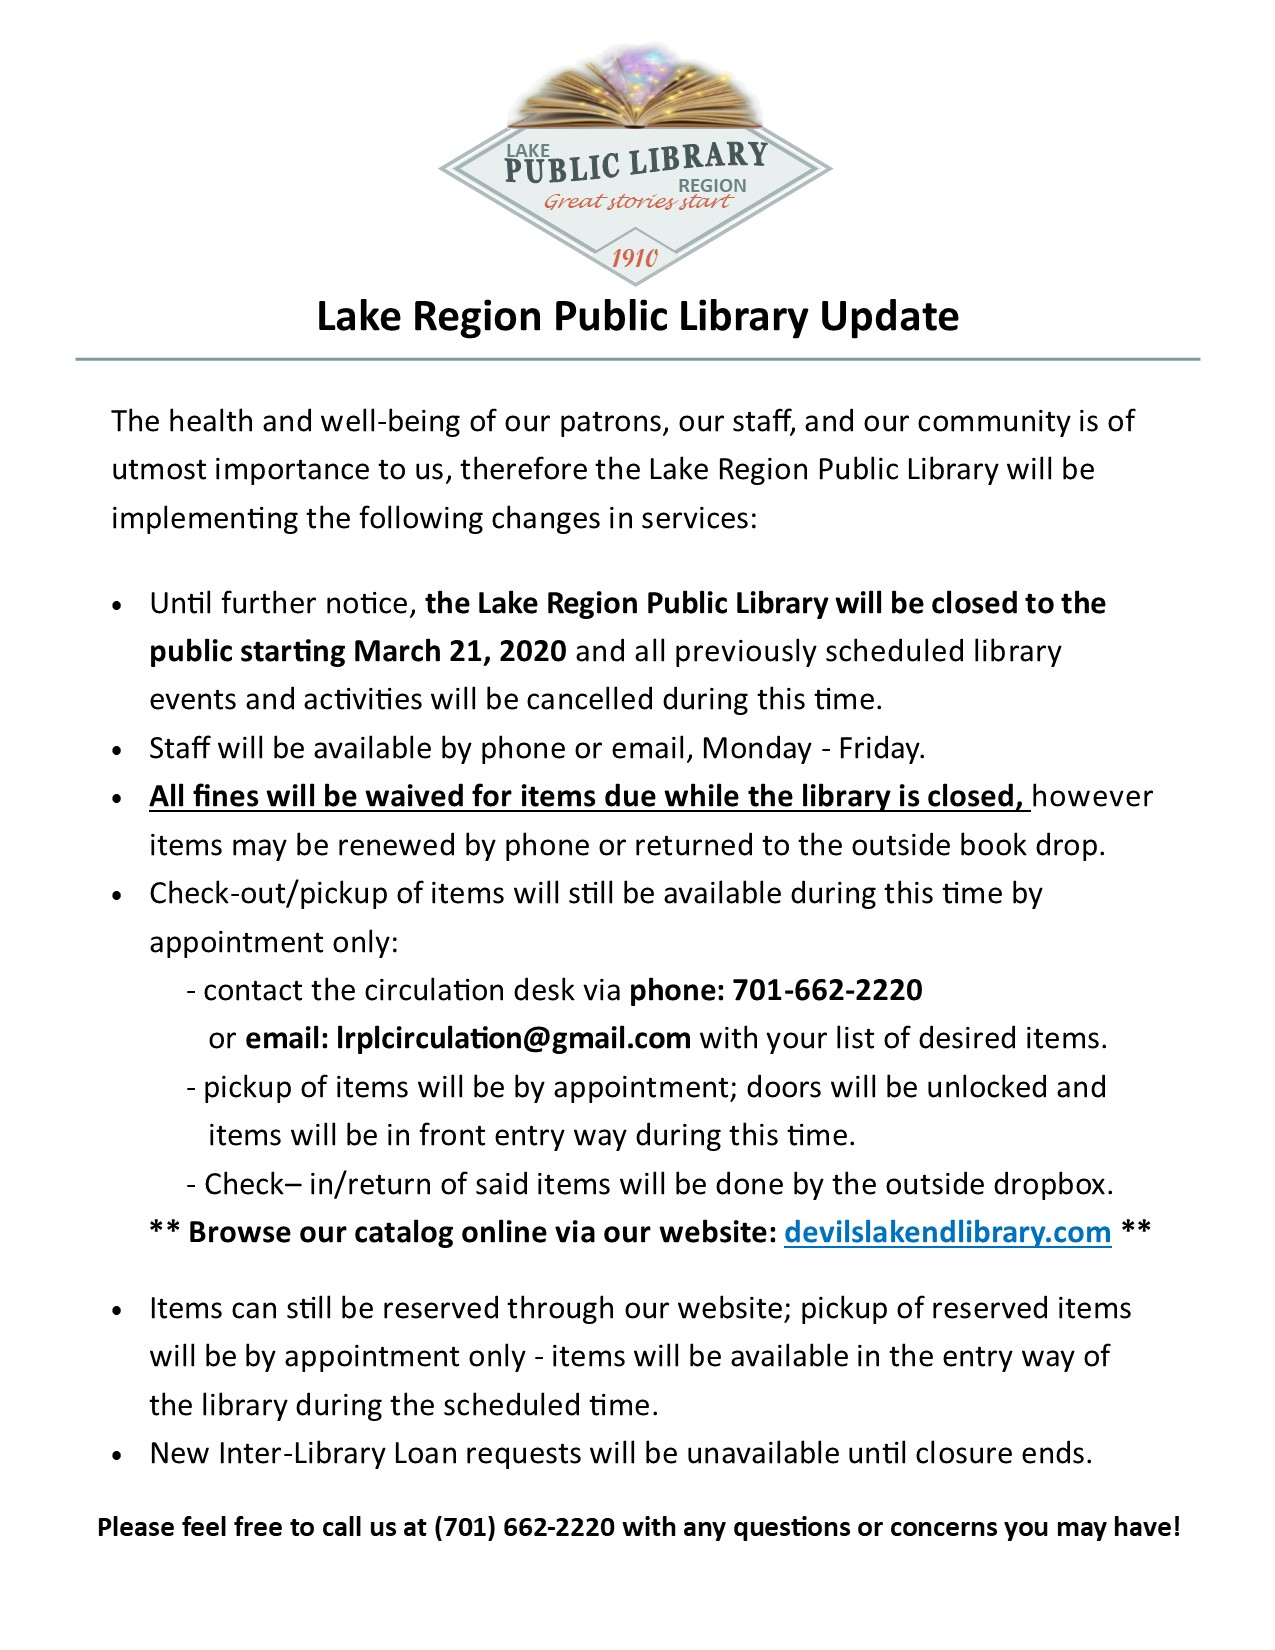 Library Services Update in regards to the (COVID-19)